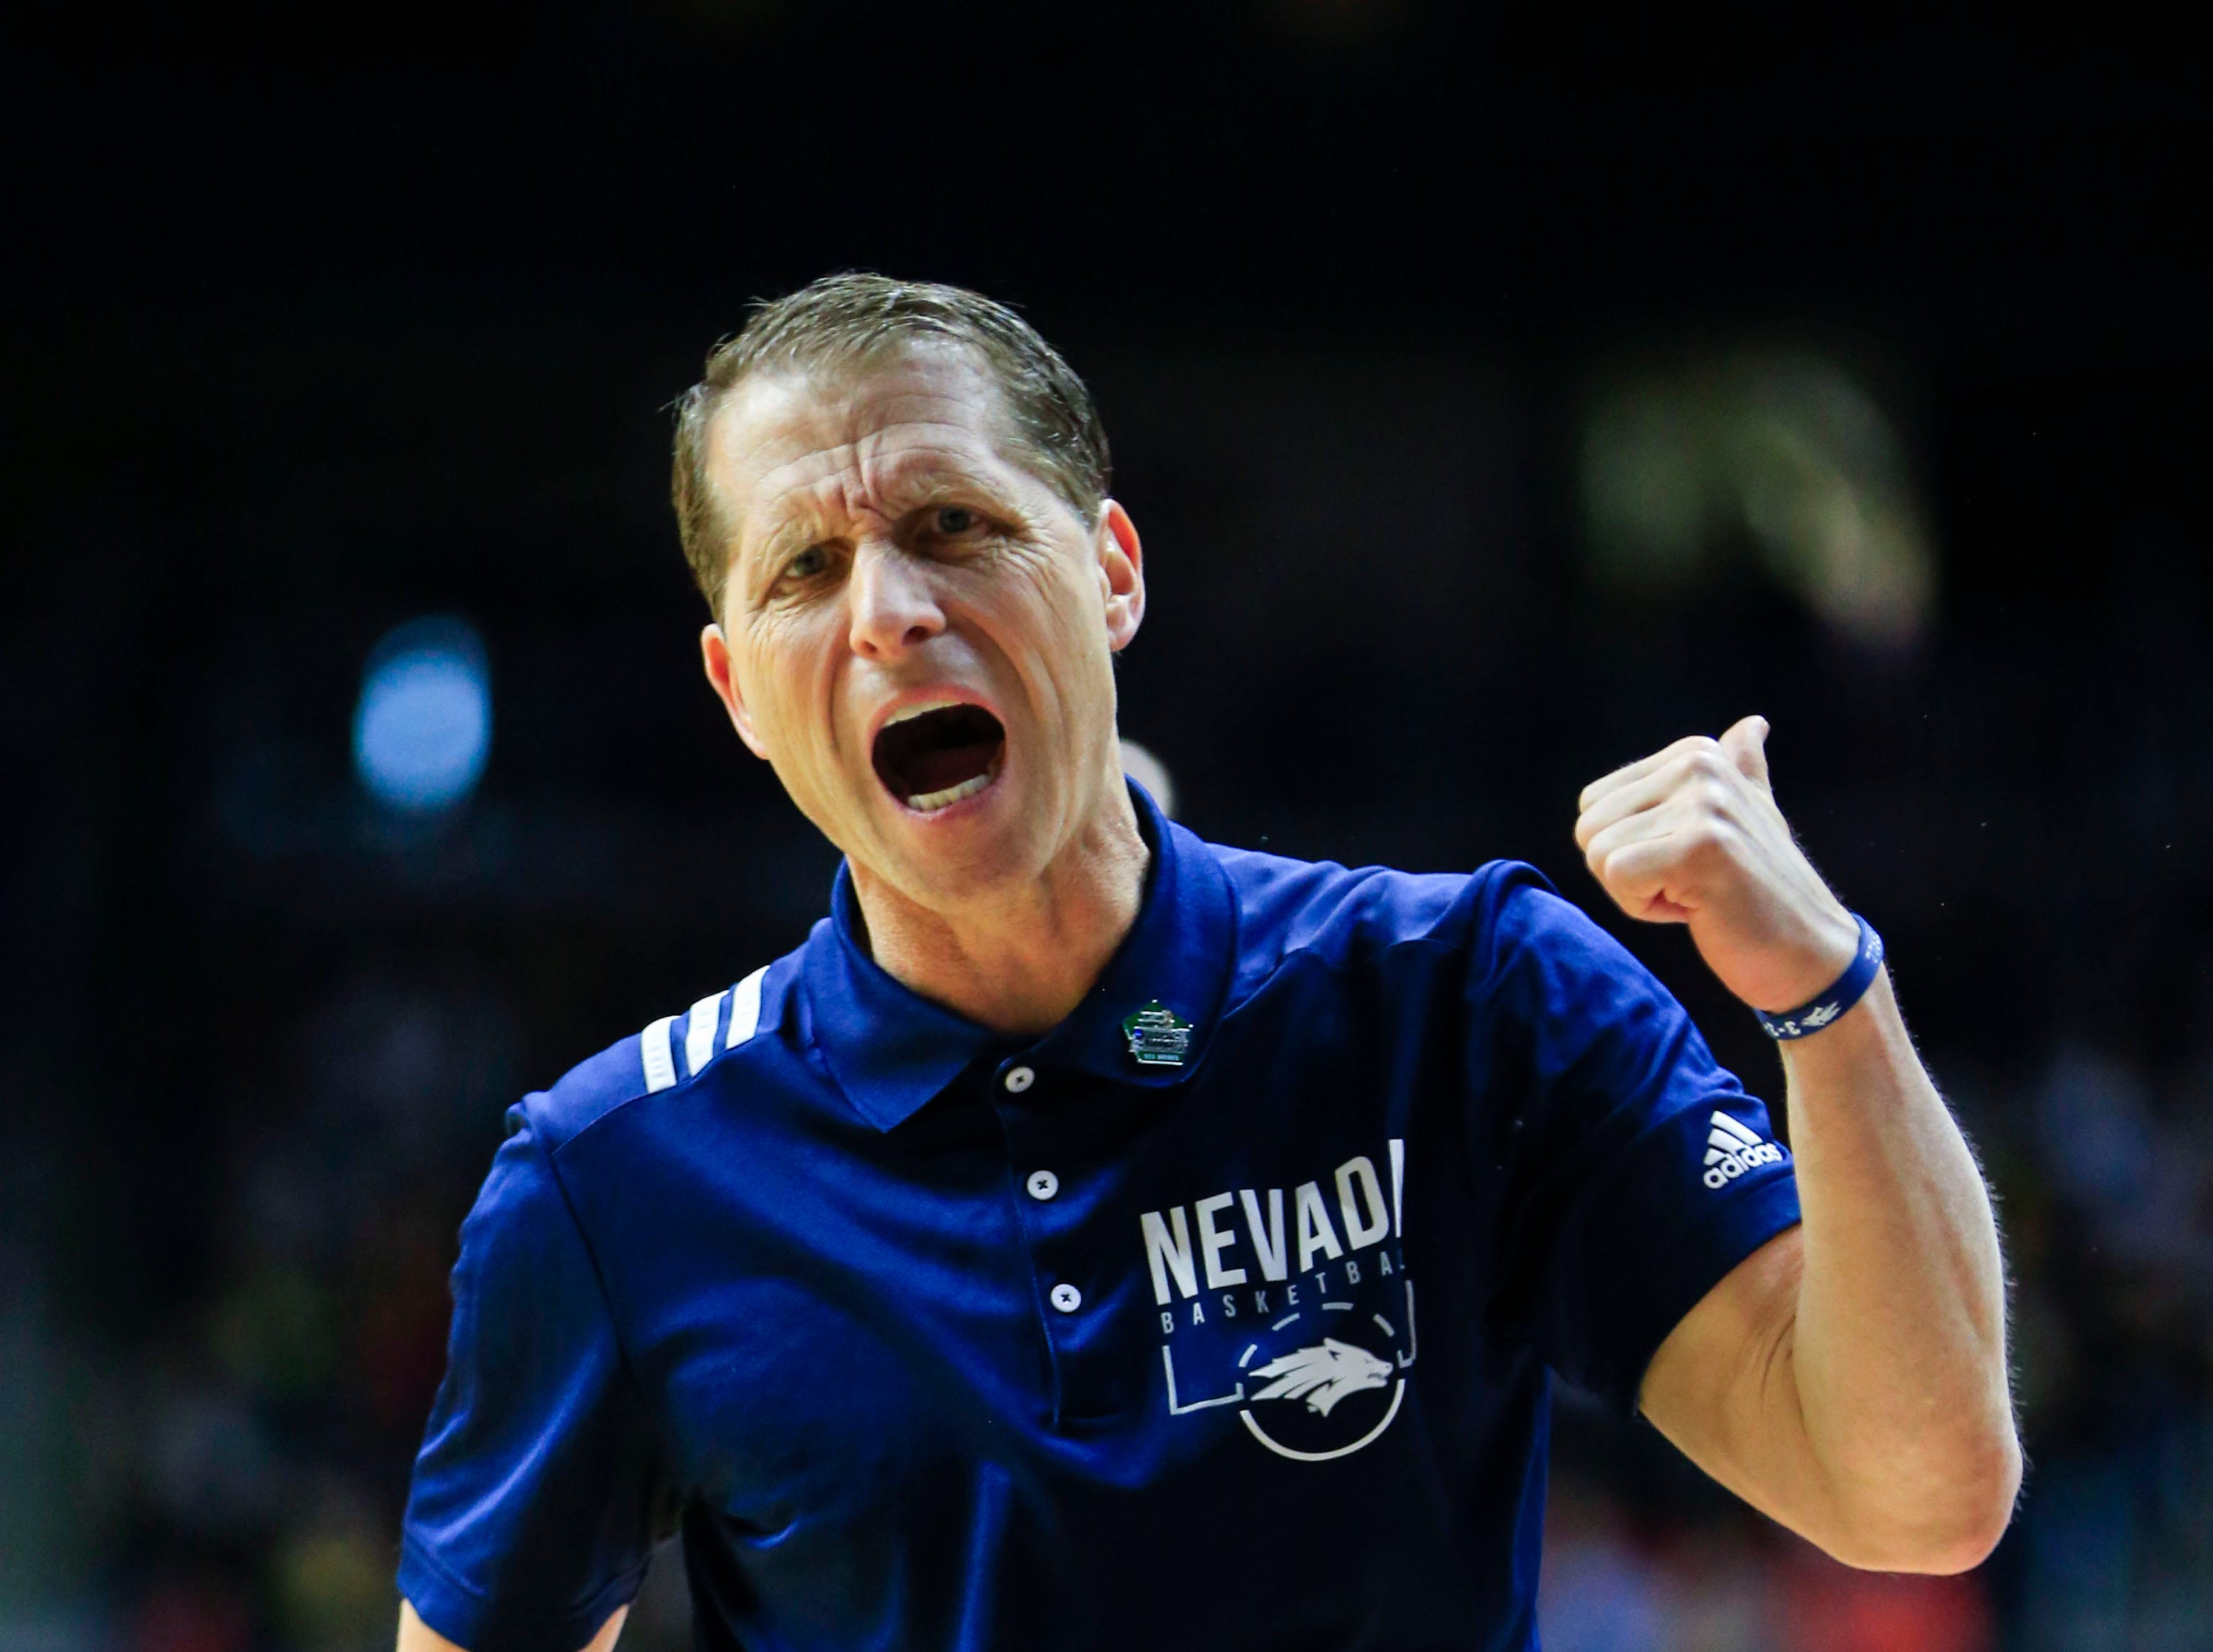 Nevada Head Coach Eric Musselman screams during the NCAA Division I Men's Basketball Championship First Round game against Florida on Thursday, March 21, 2019 in Des Moines.